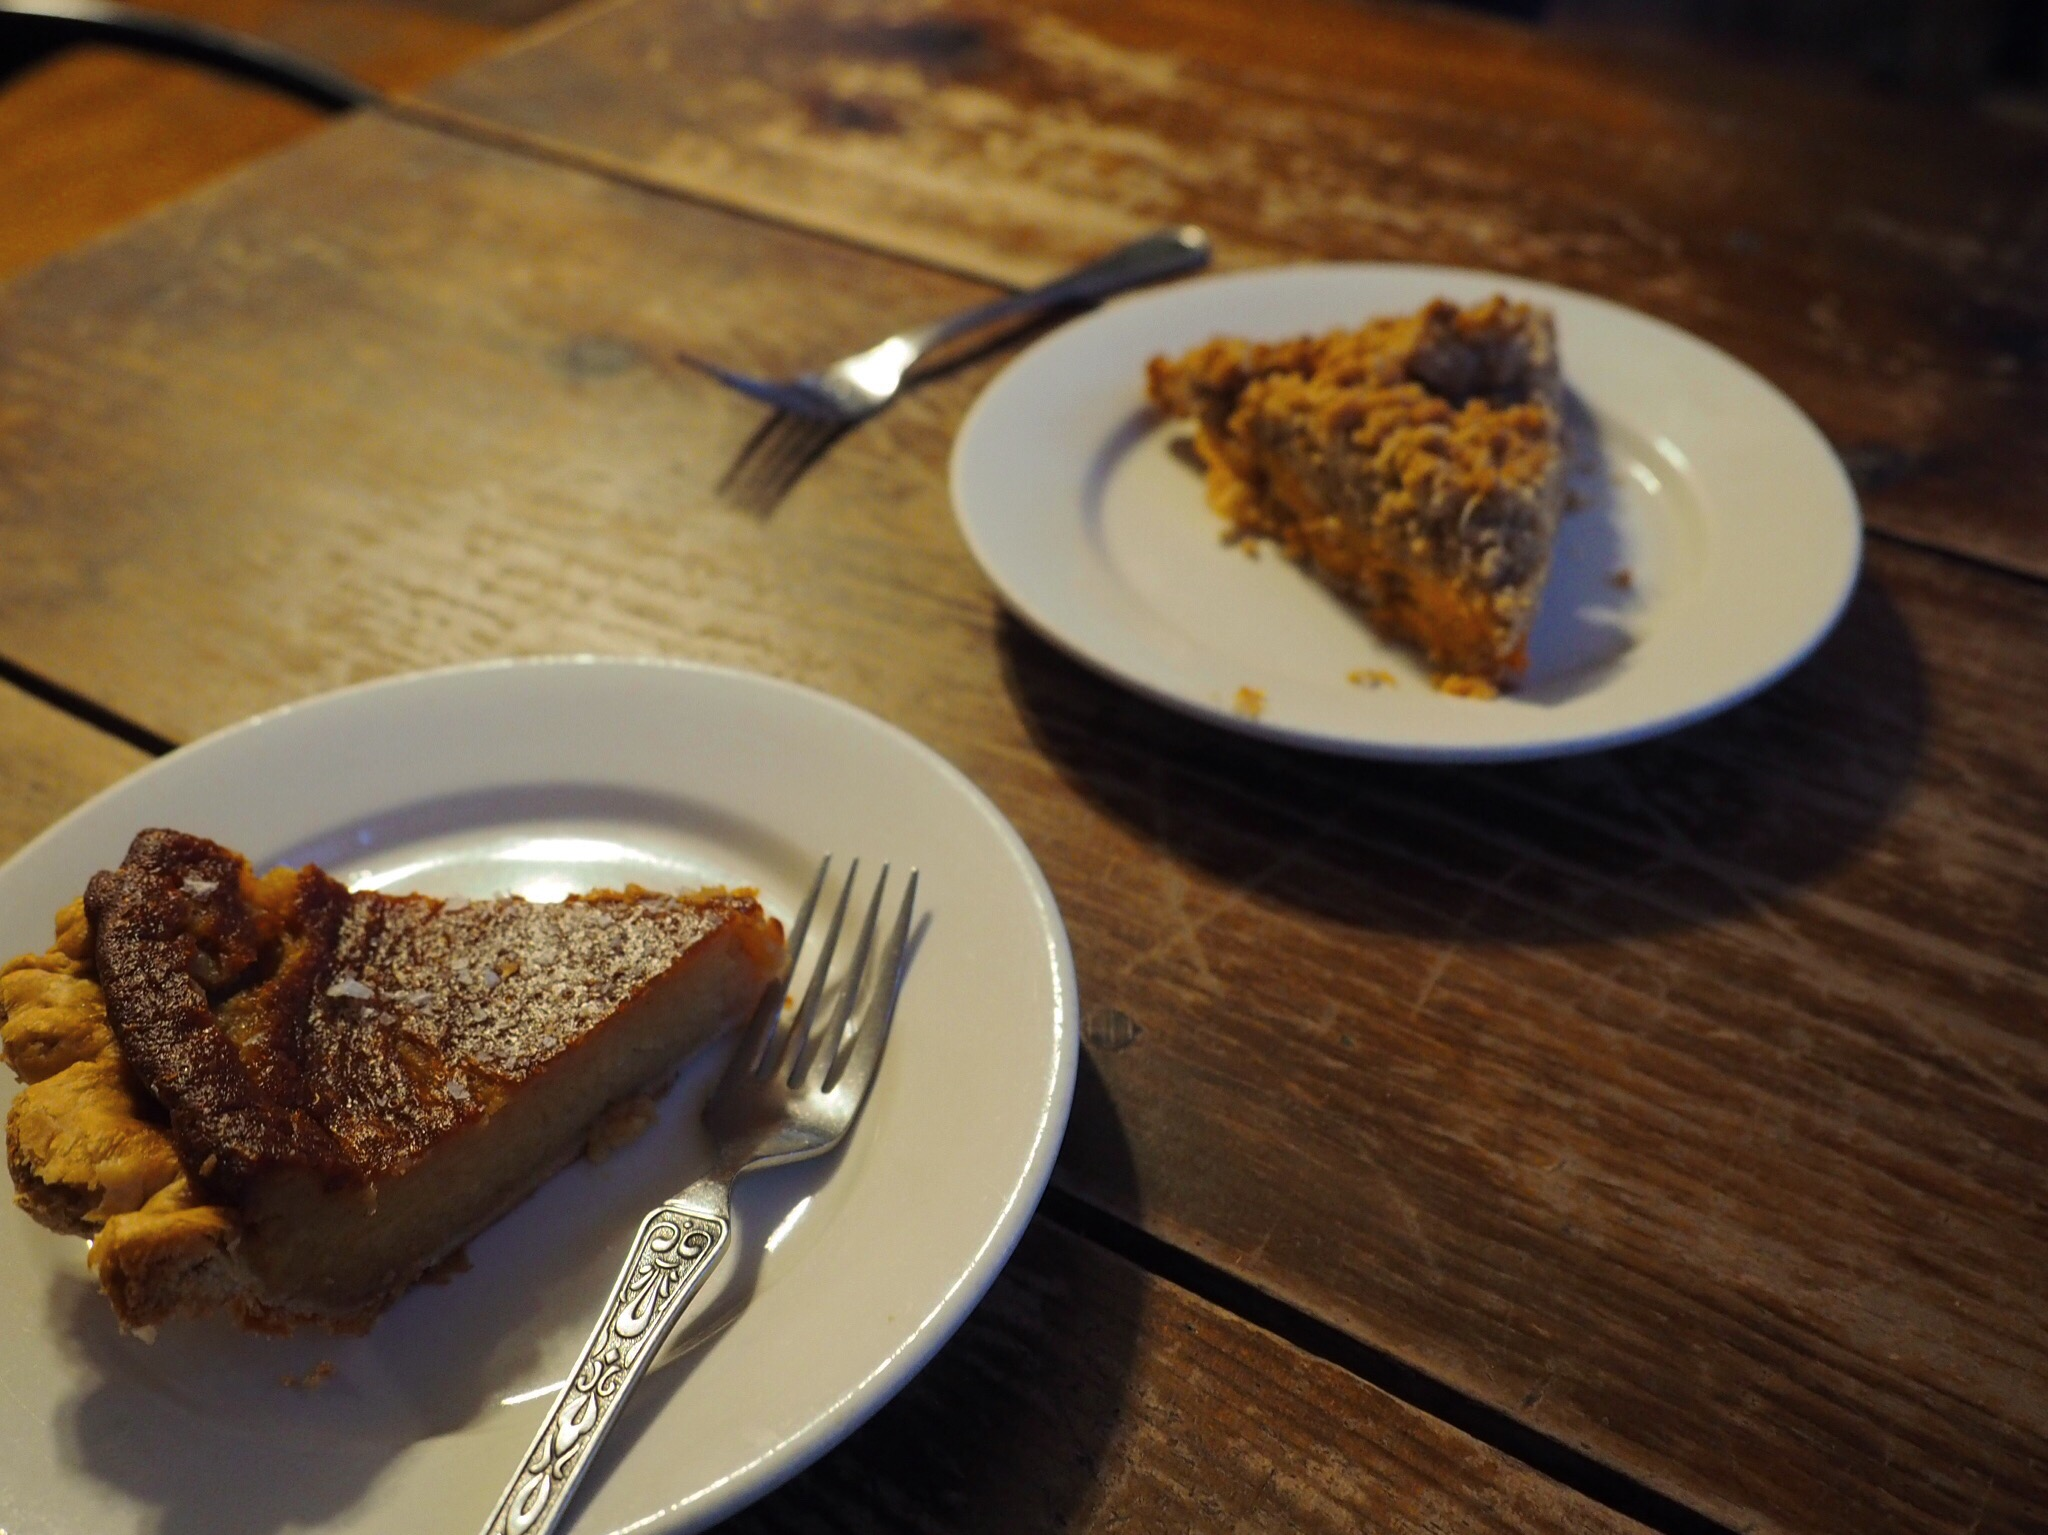 Salty Honey pie from Four & Twenty